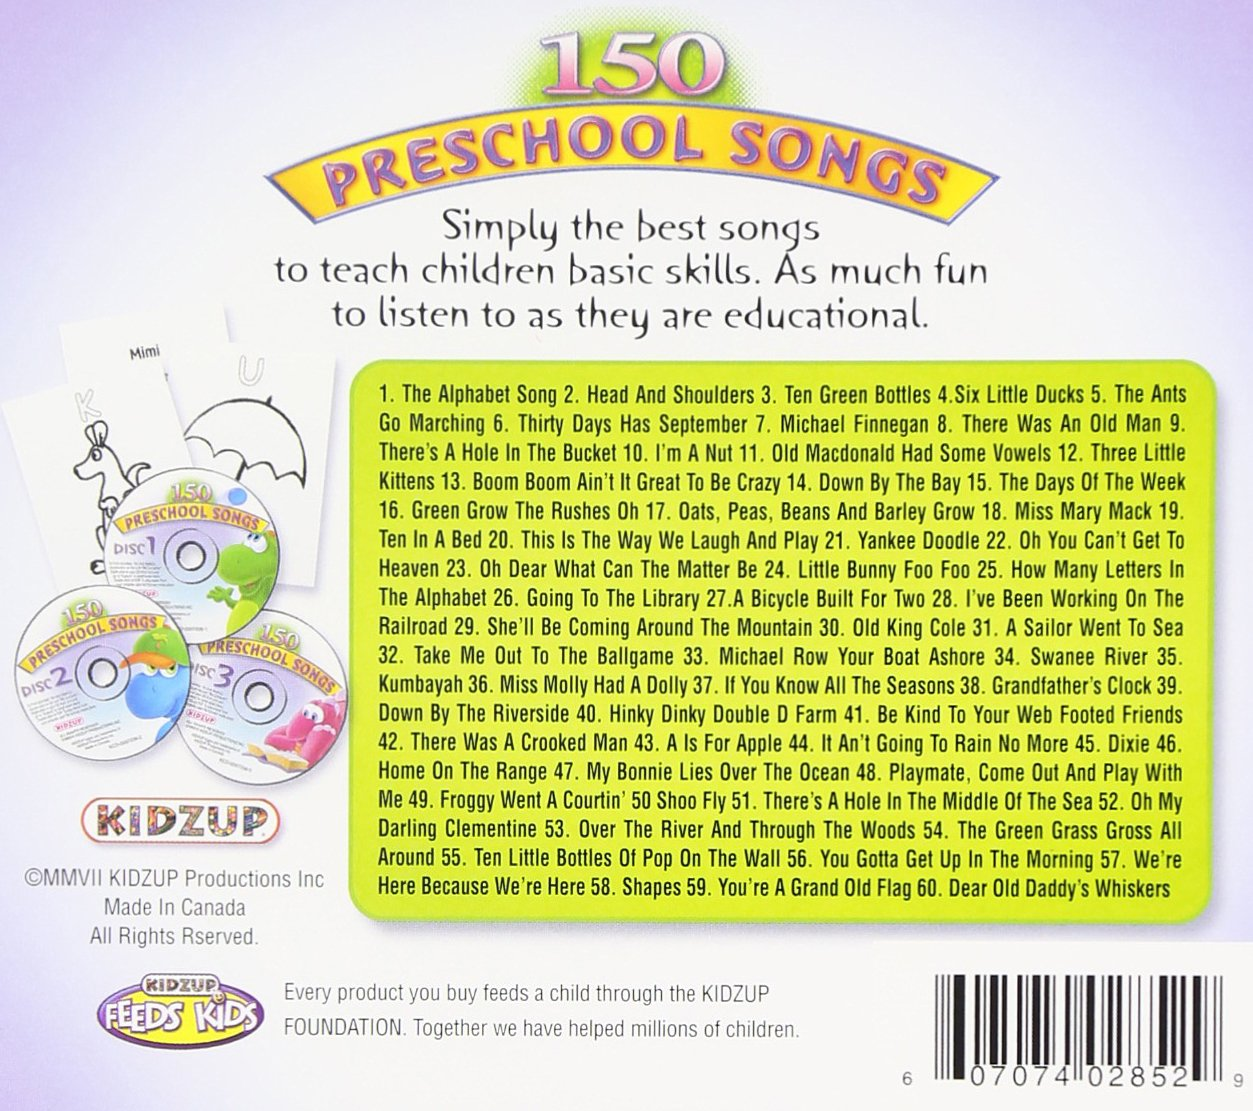 150 Preschool Songs - 150 Preschool Songs//3cd\'s - Amazon.com Music